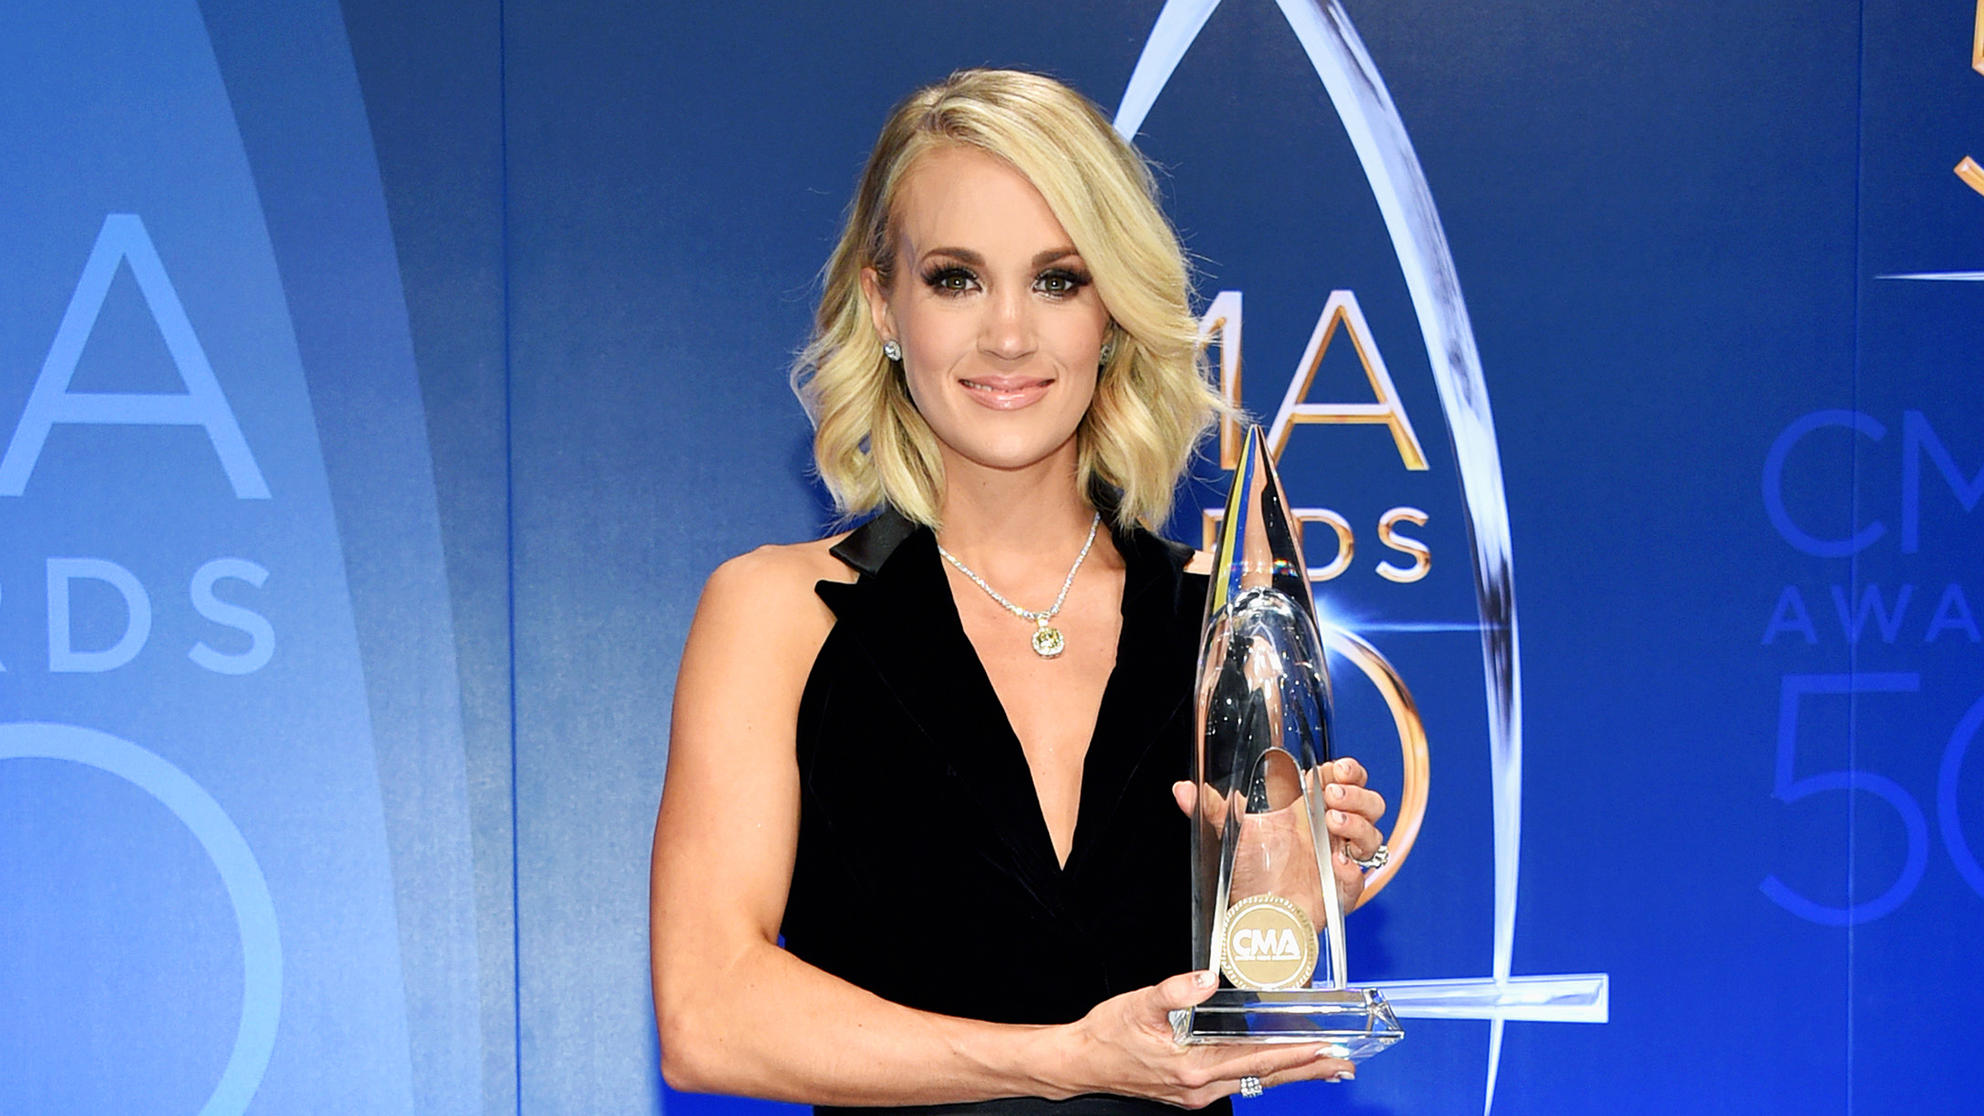 Carrie Underwood's Trainer Erin Oprea Shares the 4 Best Moves to Tone Your Arms